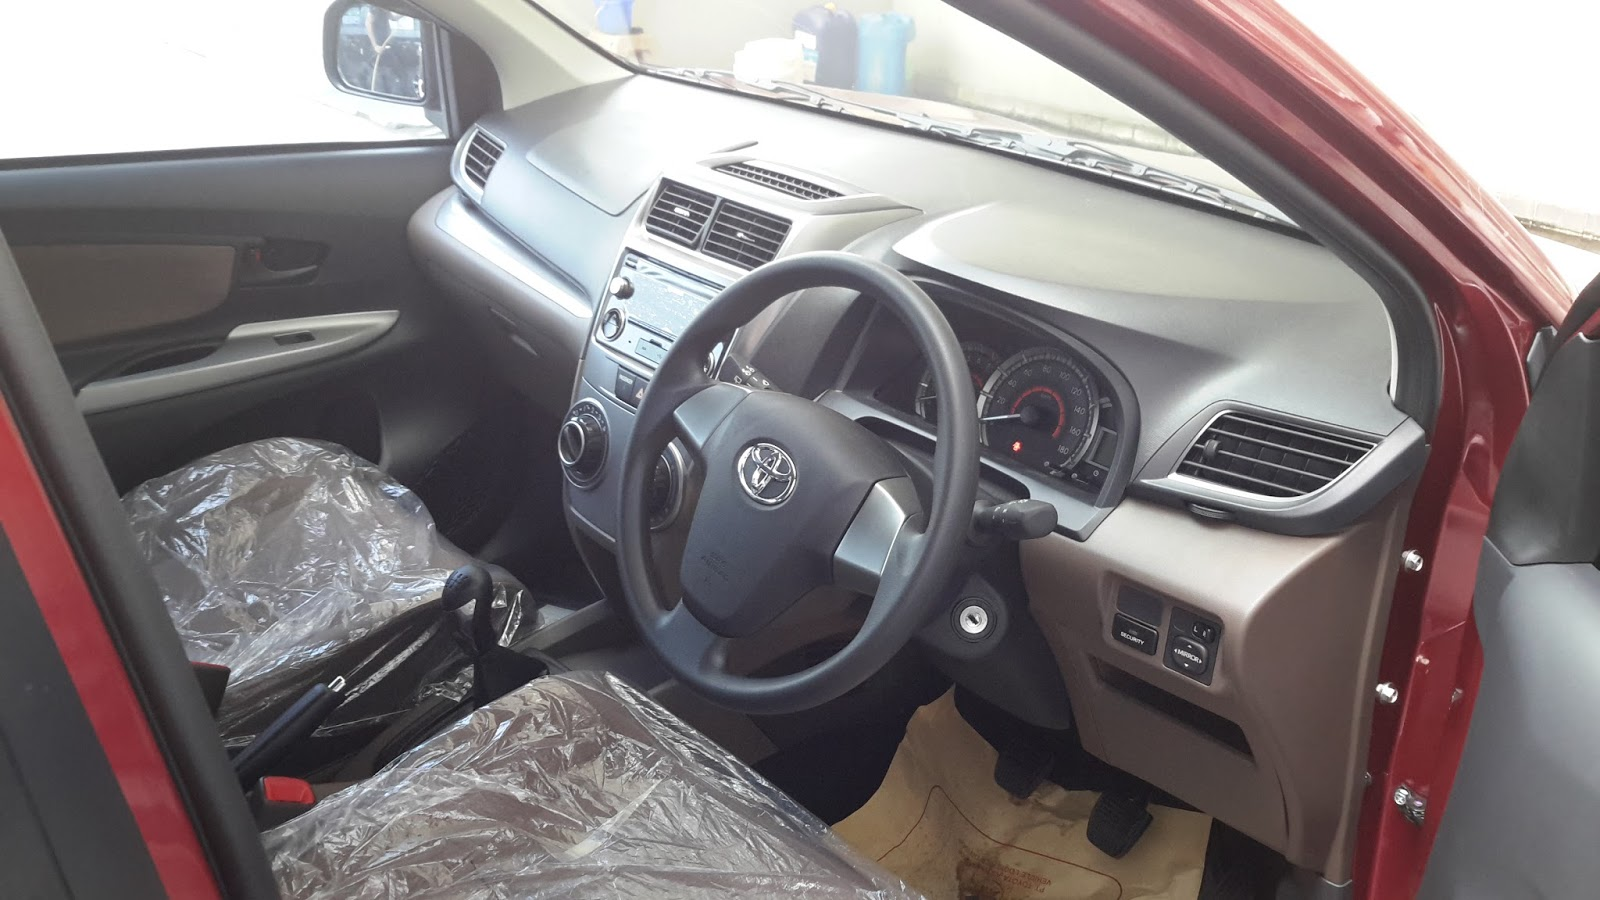 Aksesoris Grand New Avanza 2015 Toyota Yaris Trd 2018 Plaza Kyai Tapa